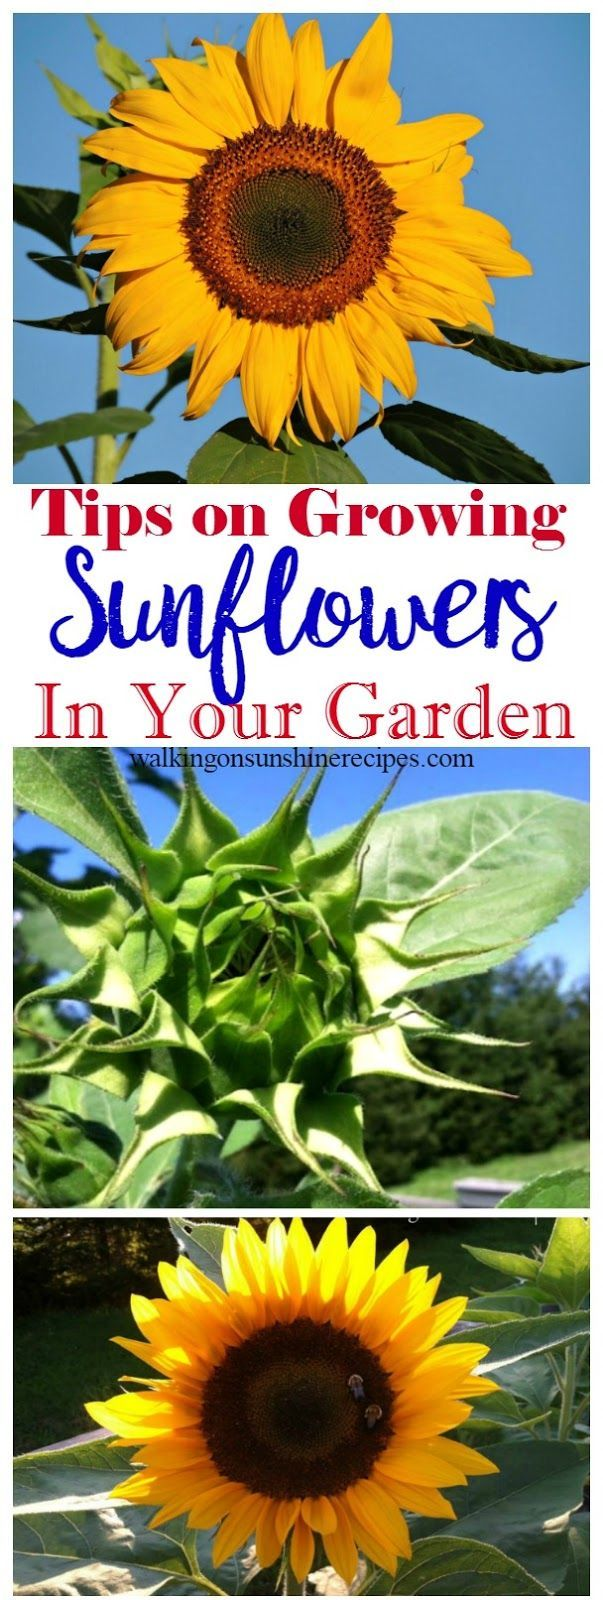 Sunflower Garden Ideas plant a ring of sunflowers to make a sunflower house i will be doing this 5 Tips For Growing Sunflowers In Your Garden Is This Weeks Thursdays Tip From Walking On